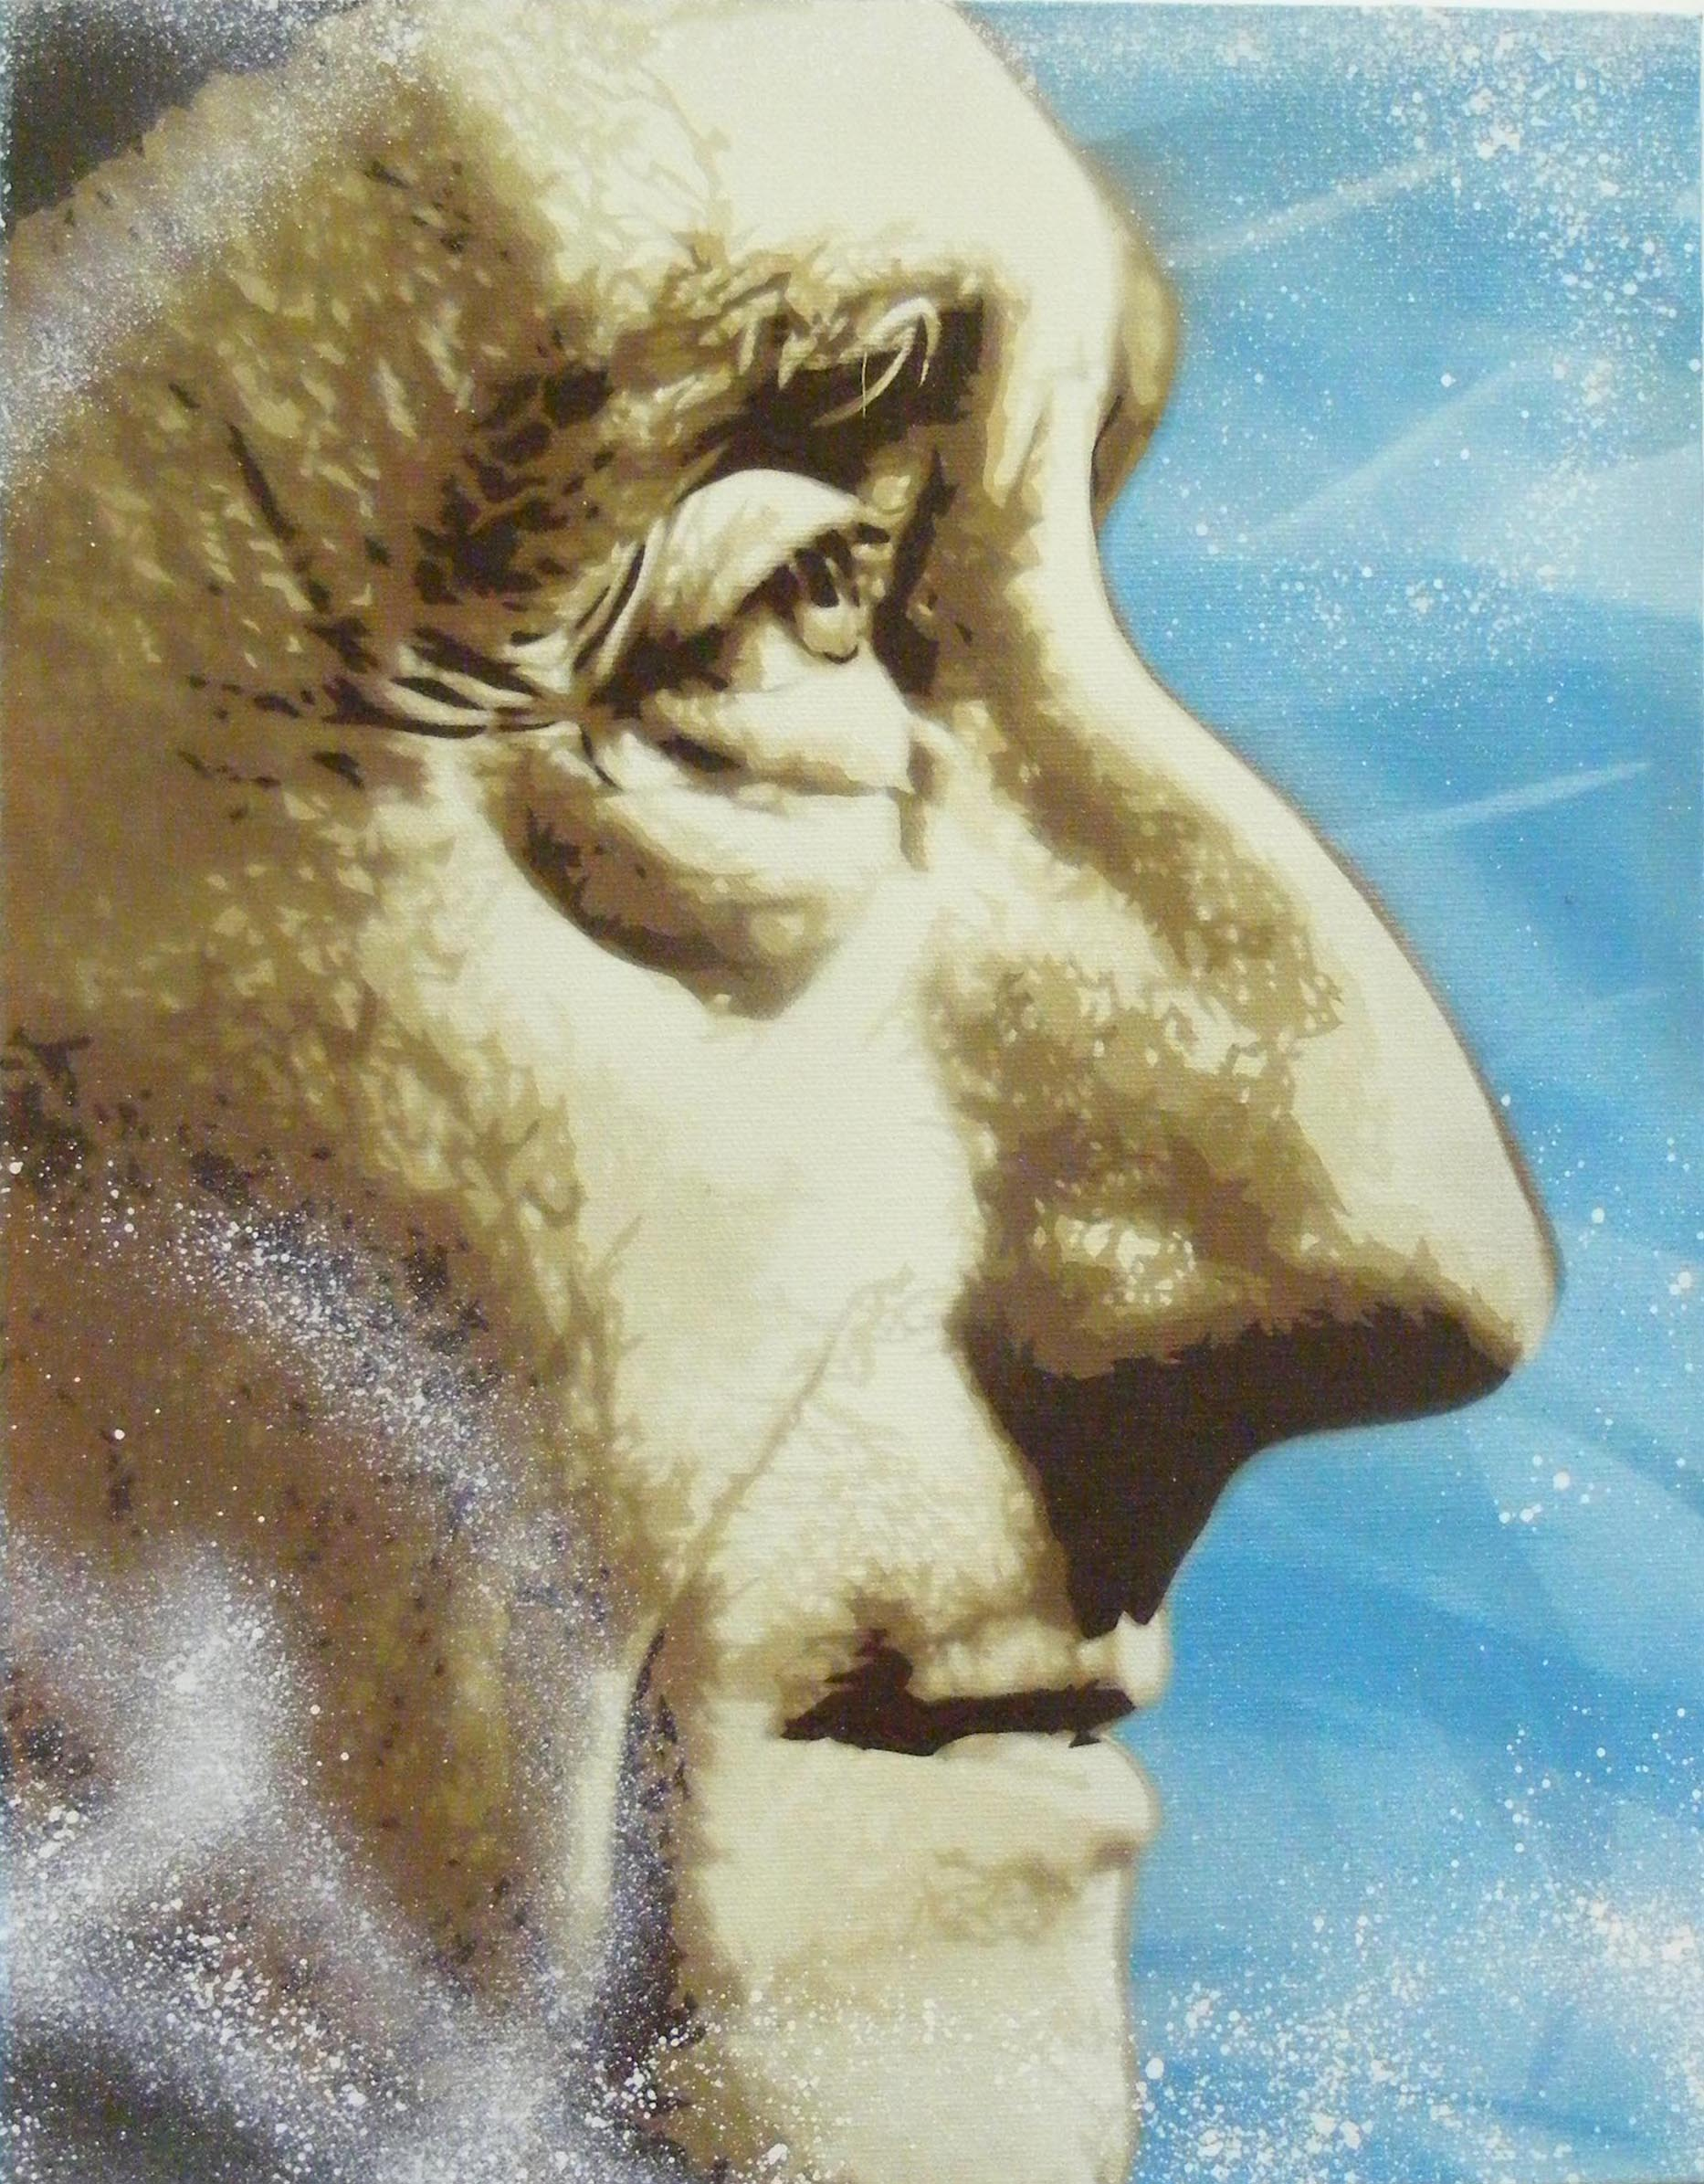 cousteau detail.JPG